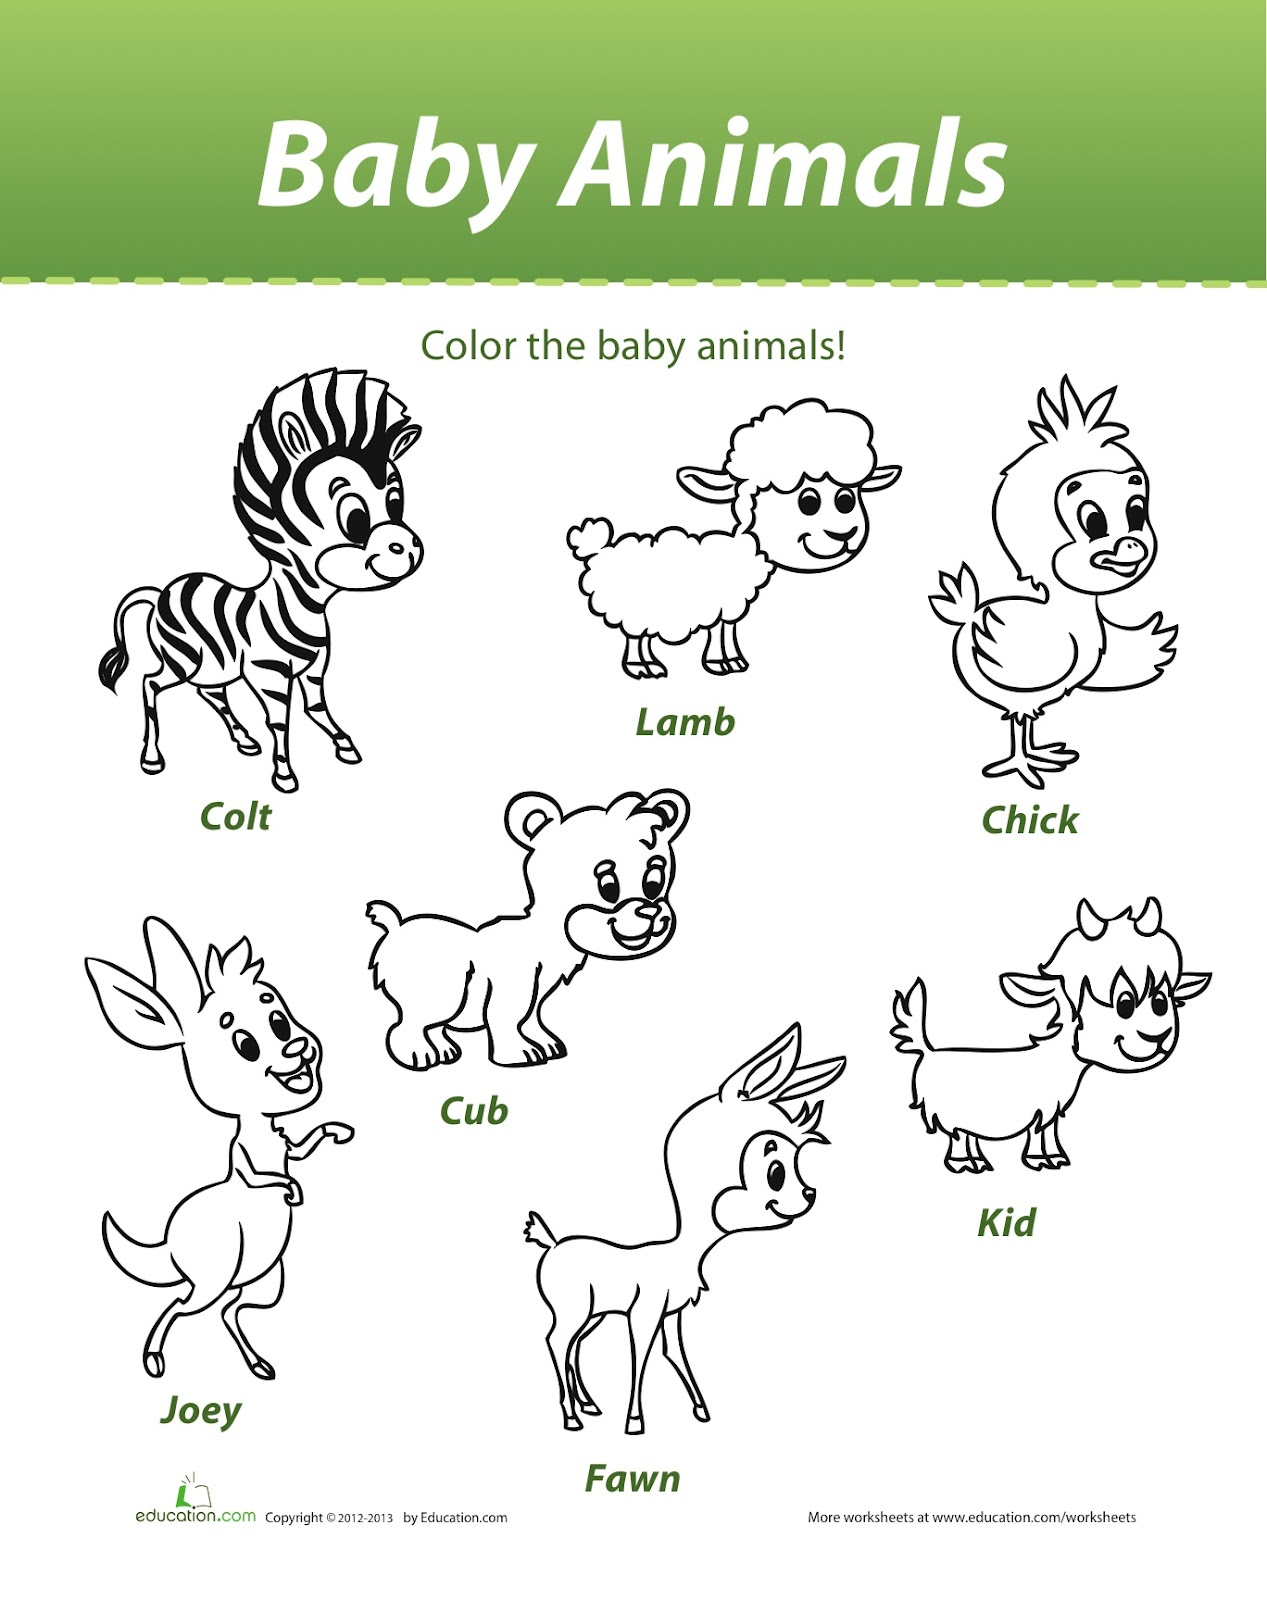 worksheet Farm Animal Worksheets animals and their babies match farm to realistic luna lara baby colouring sheet